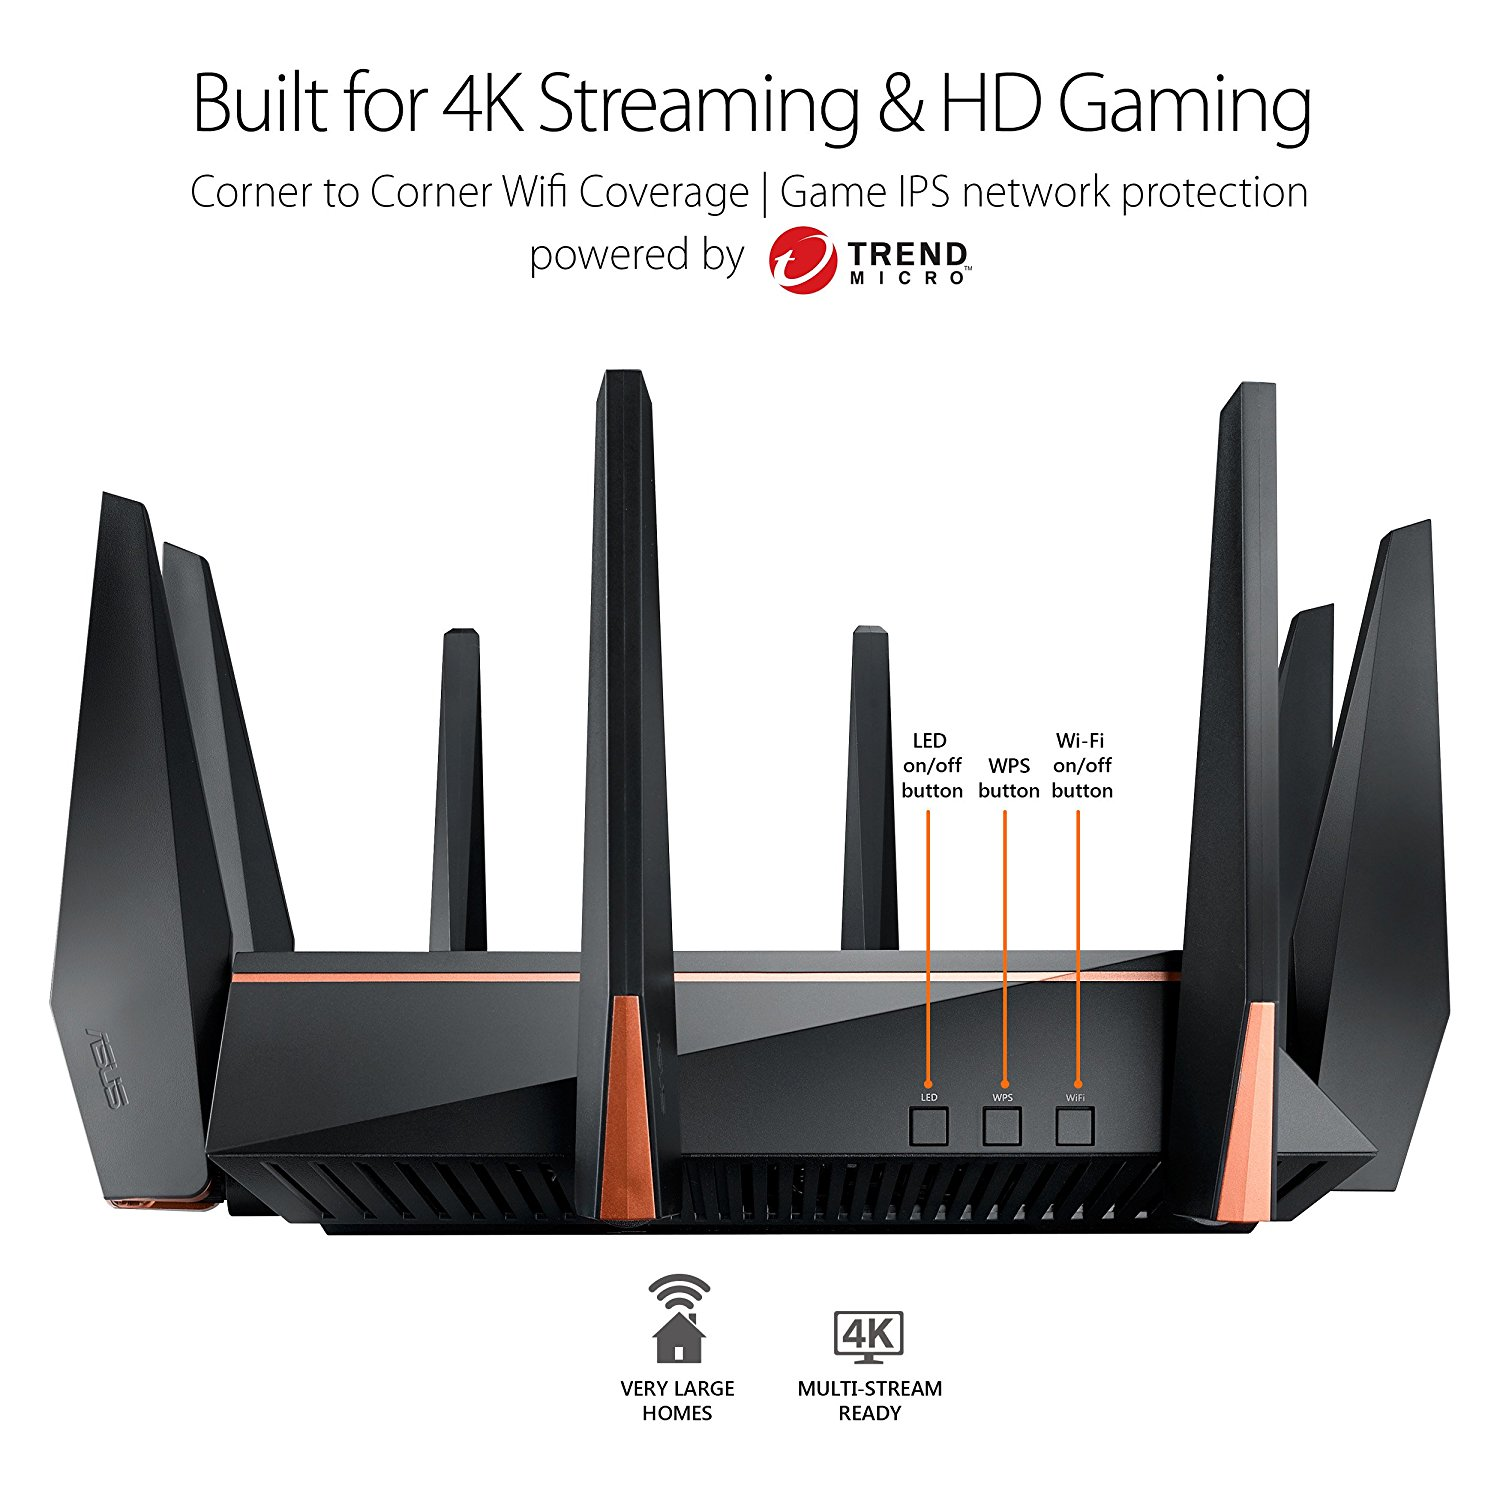 Asus ROG Rapture Wireless-AC5300 Tri-Band Router for VR